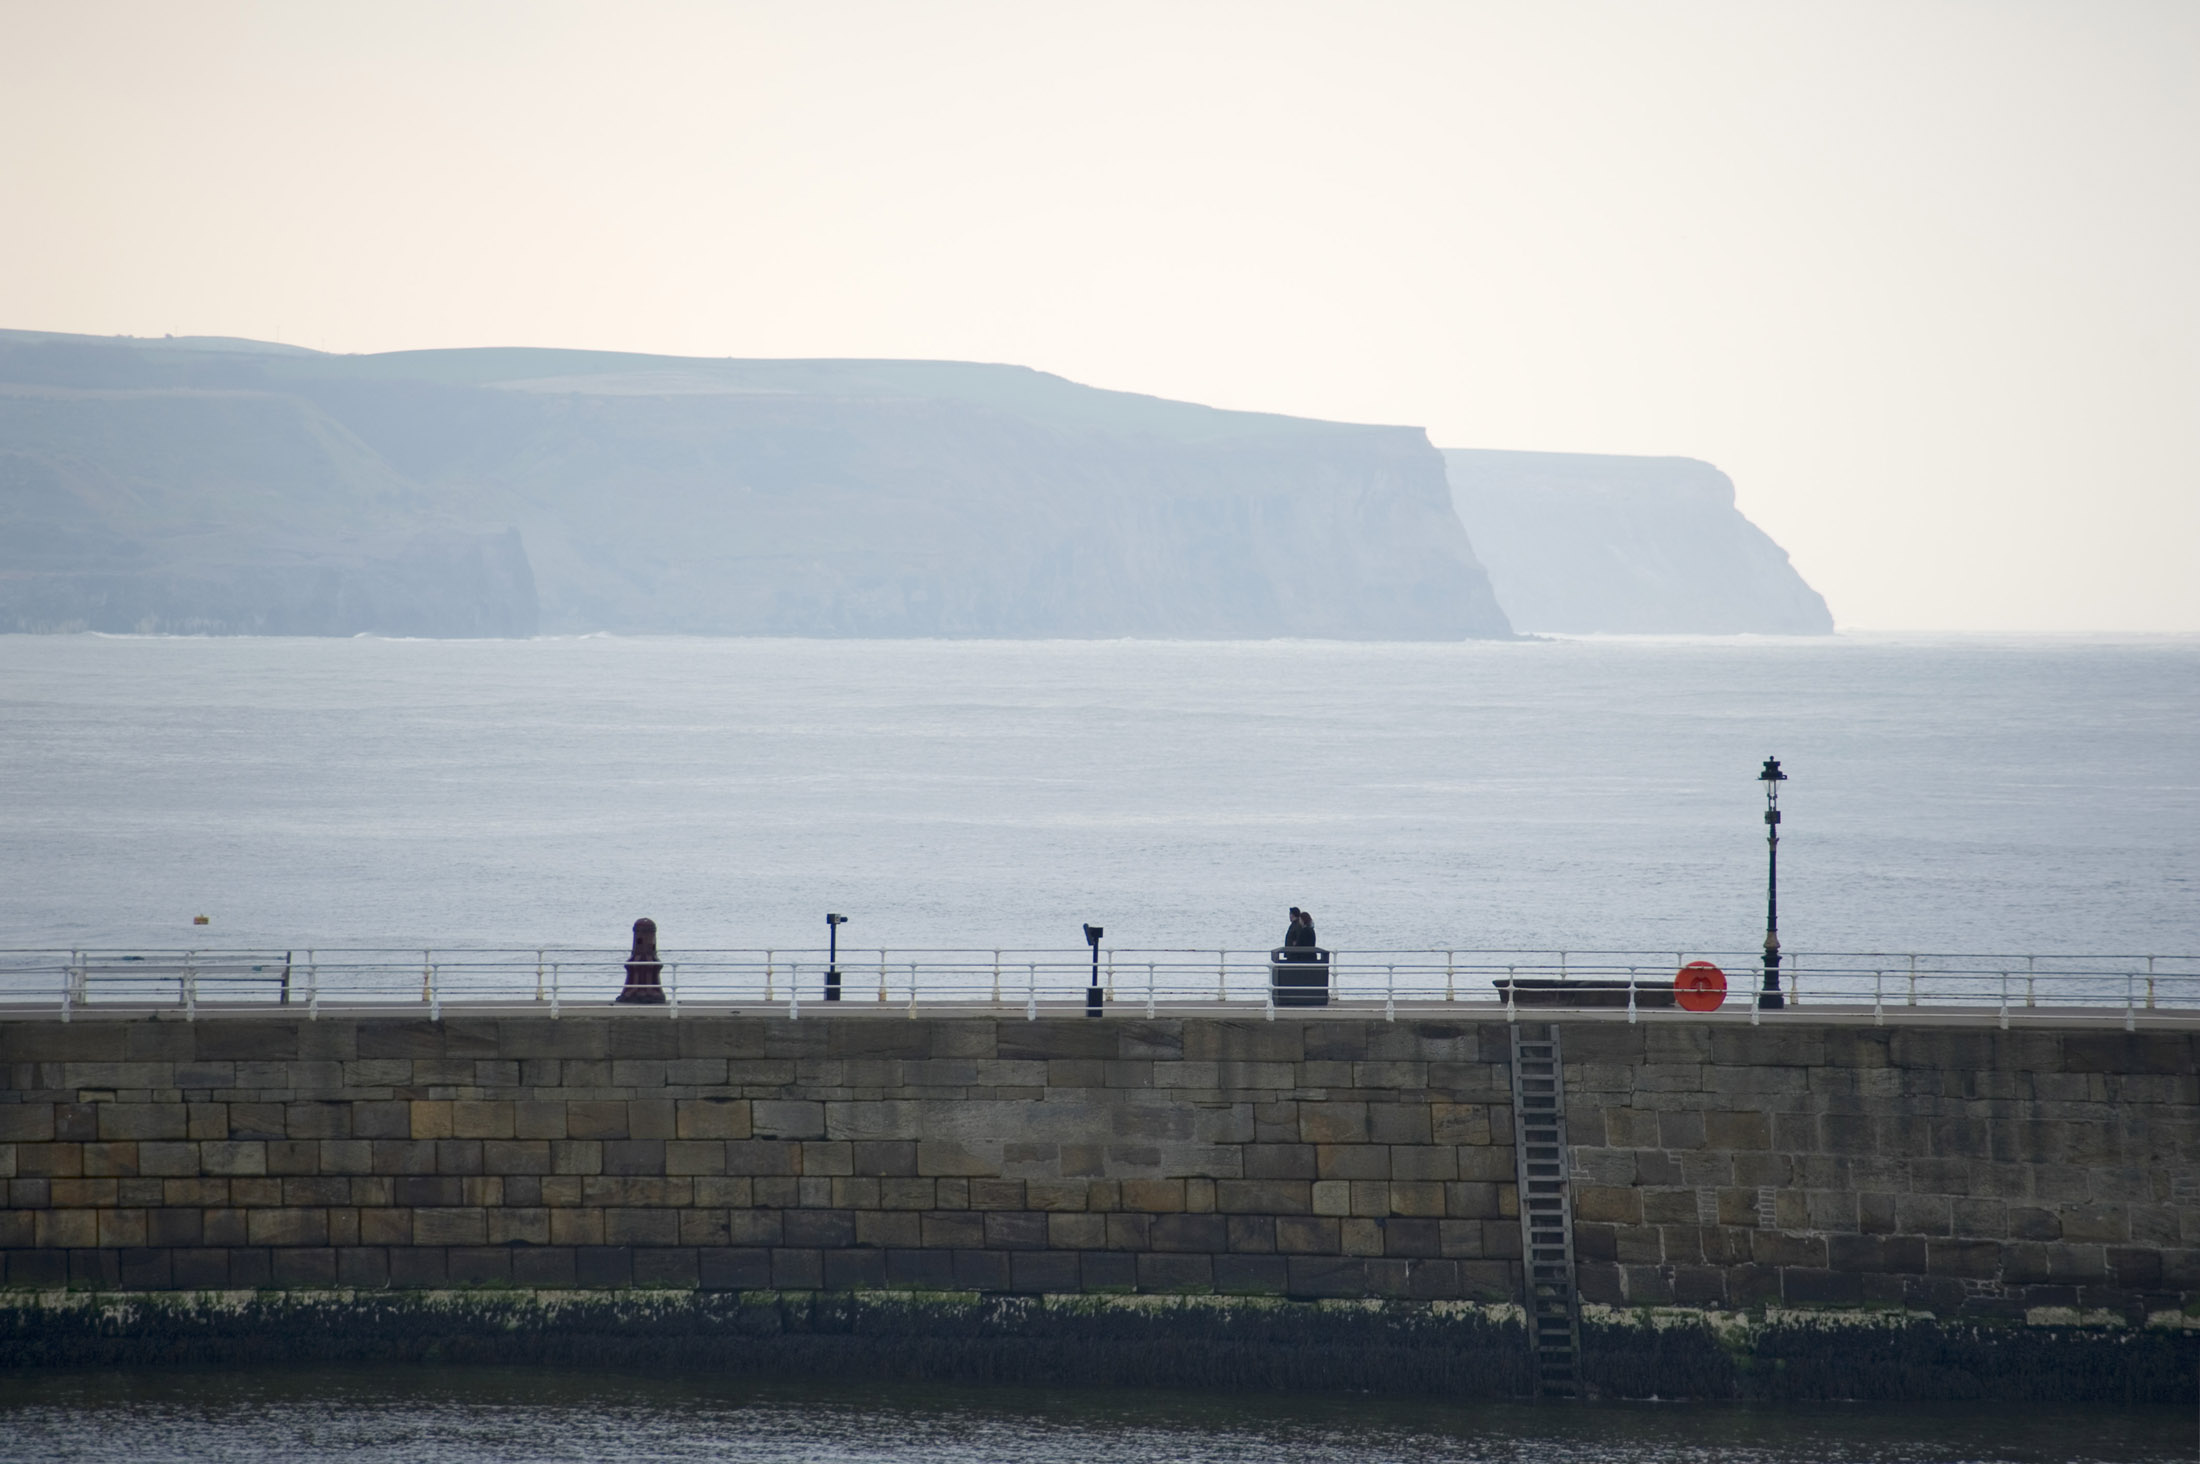 a view across one of the stone piers at whitby an the coastal headlands beyond